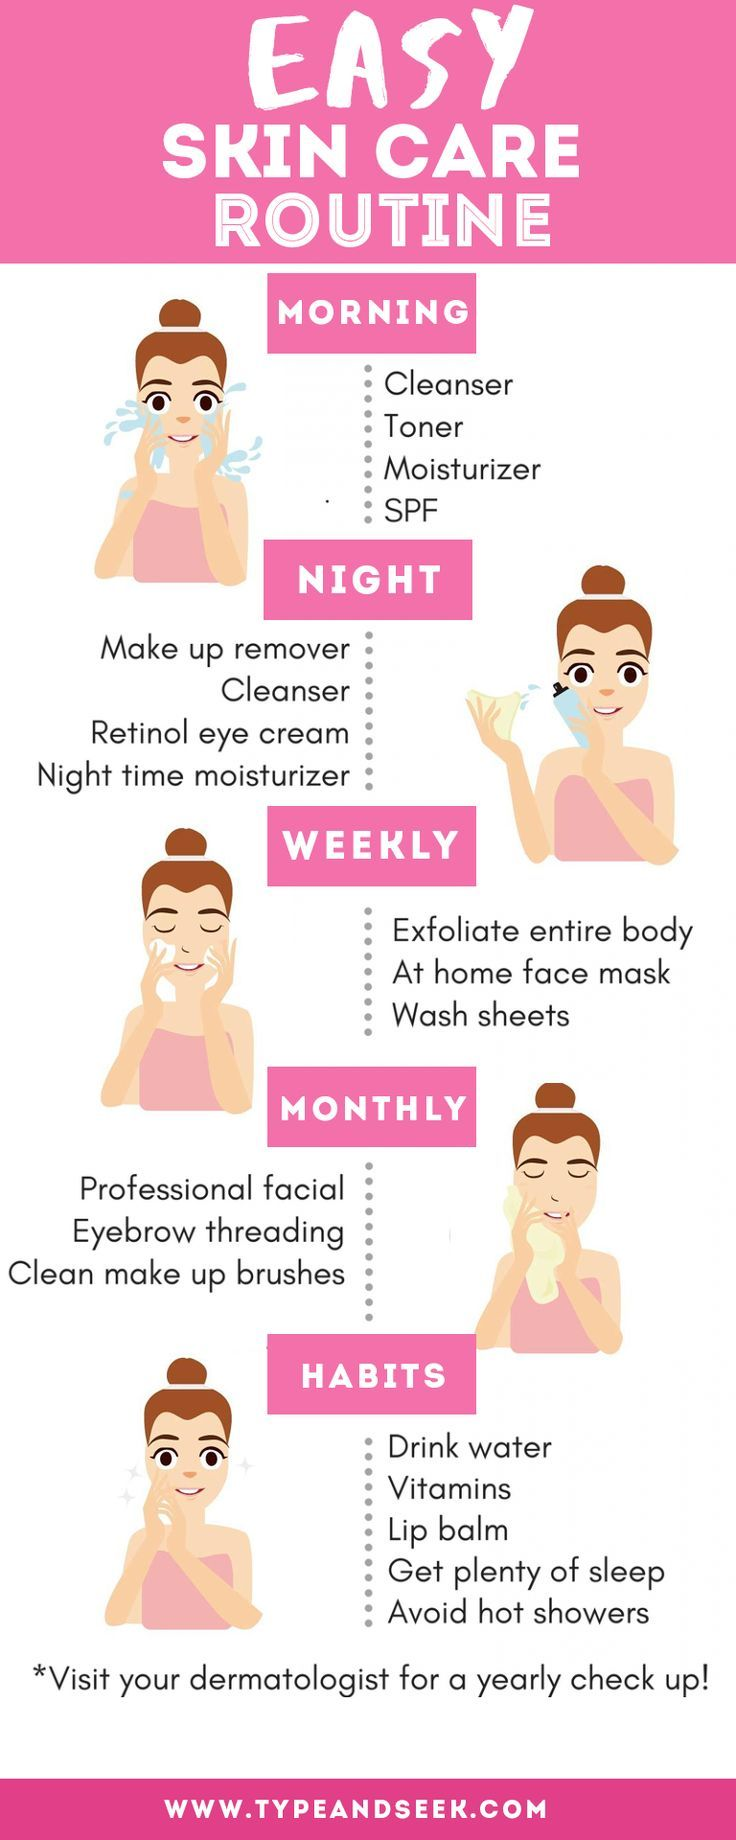 Easy Skin Care Routine That Works Wonders!  Simple skincare